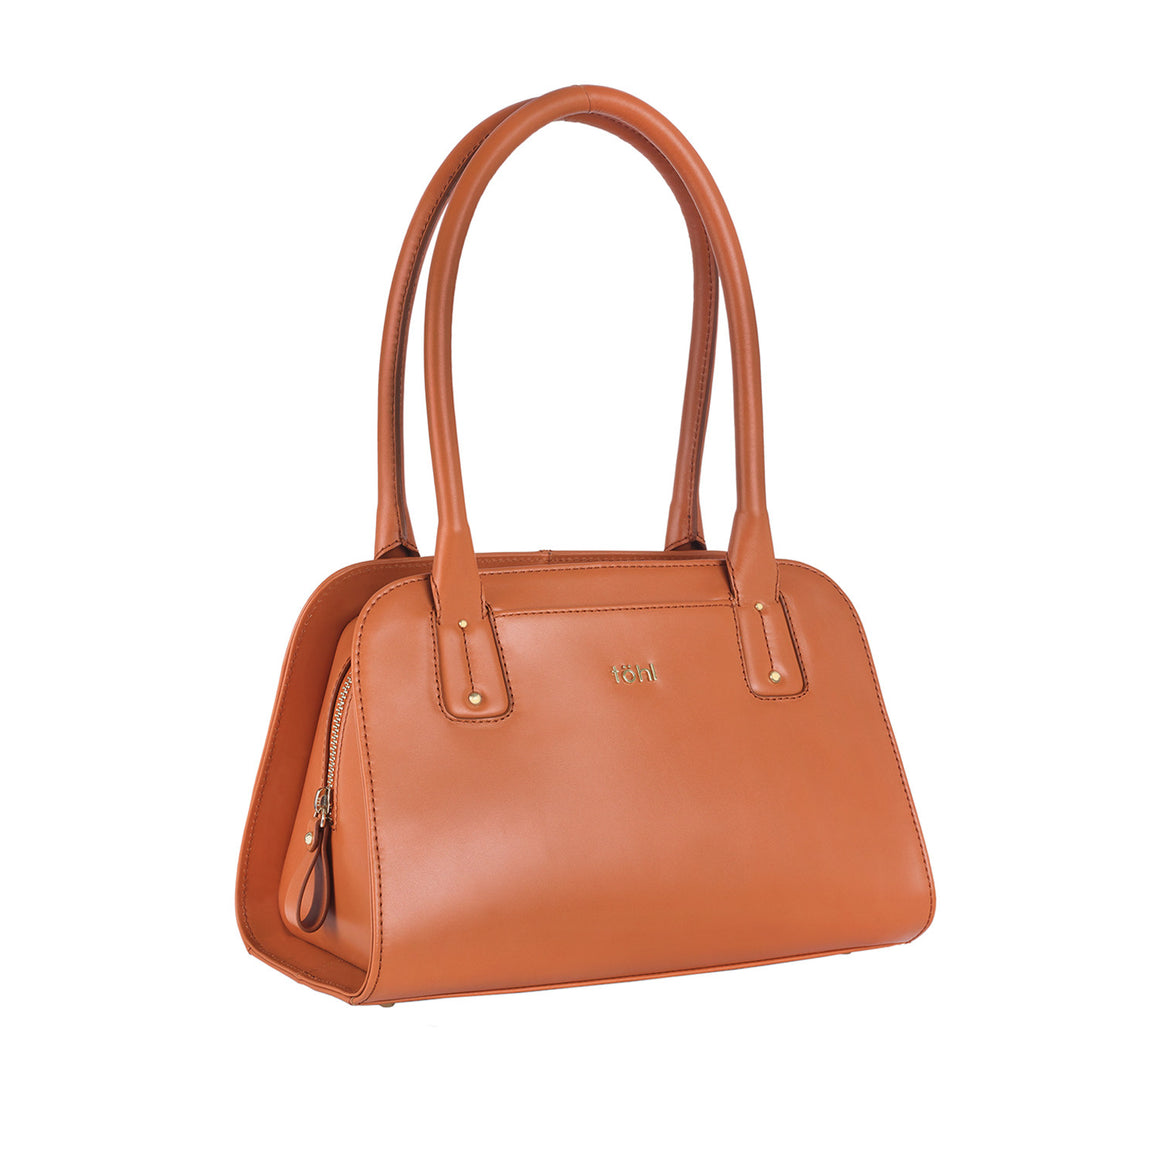 HH 0006 - TOHL PALOMA WOMEN'S SHOULDER BAG - COGNAC